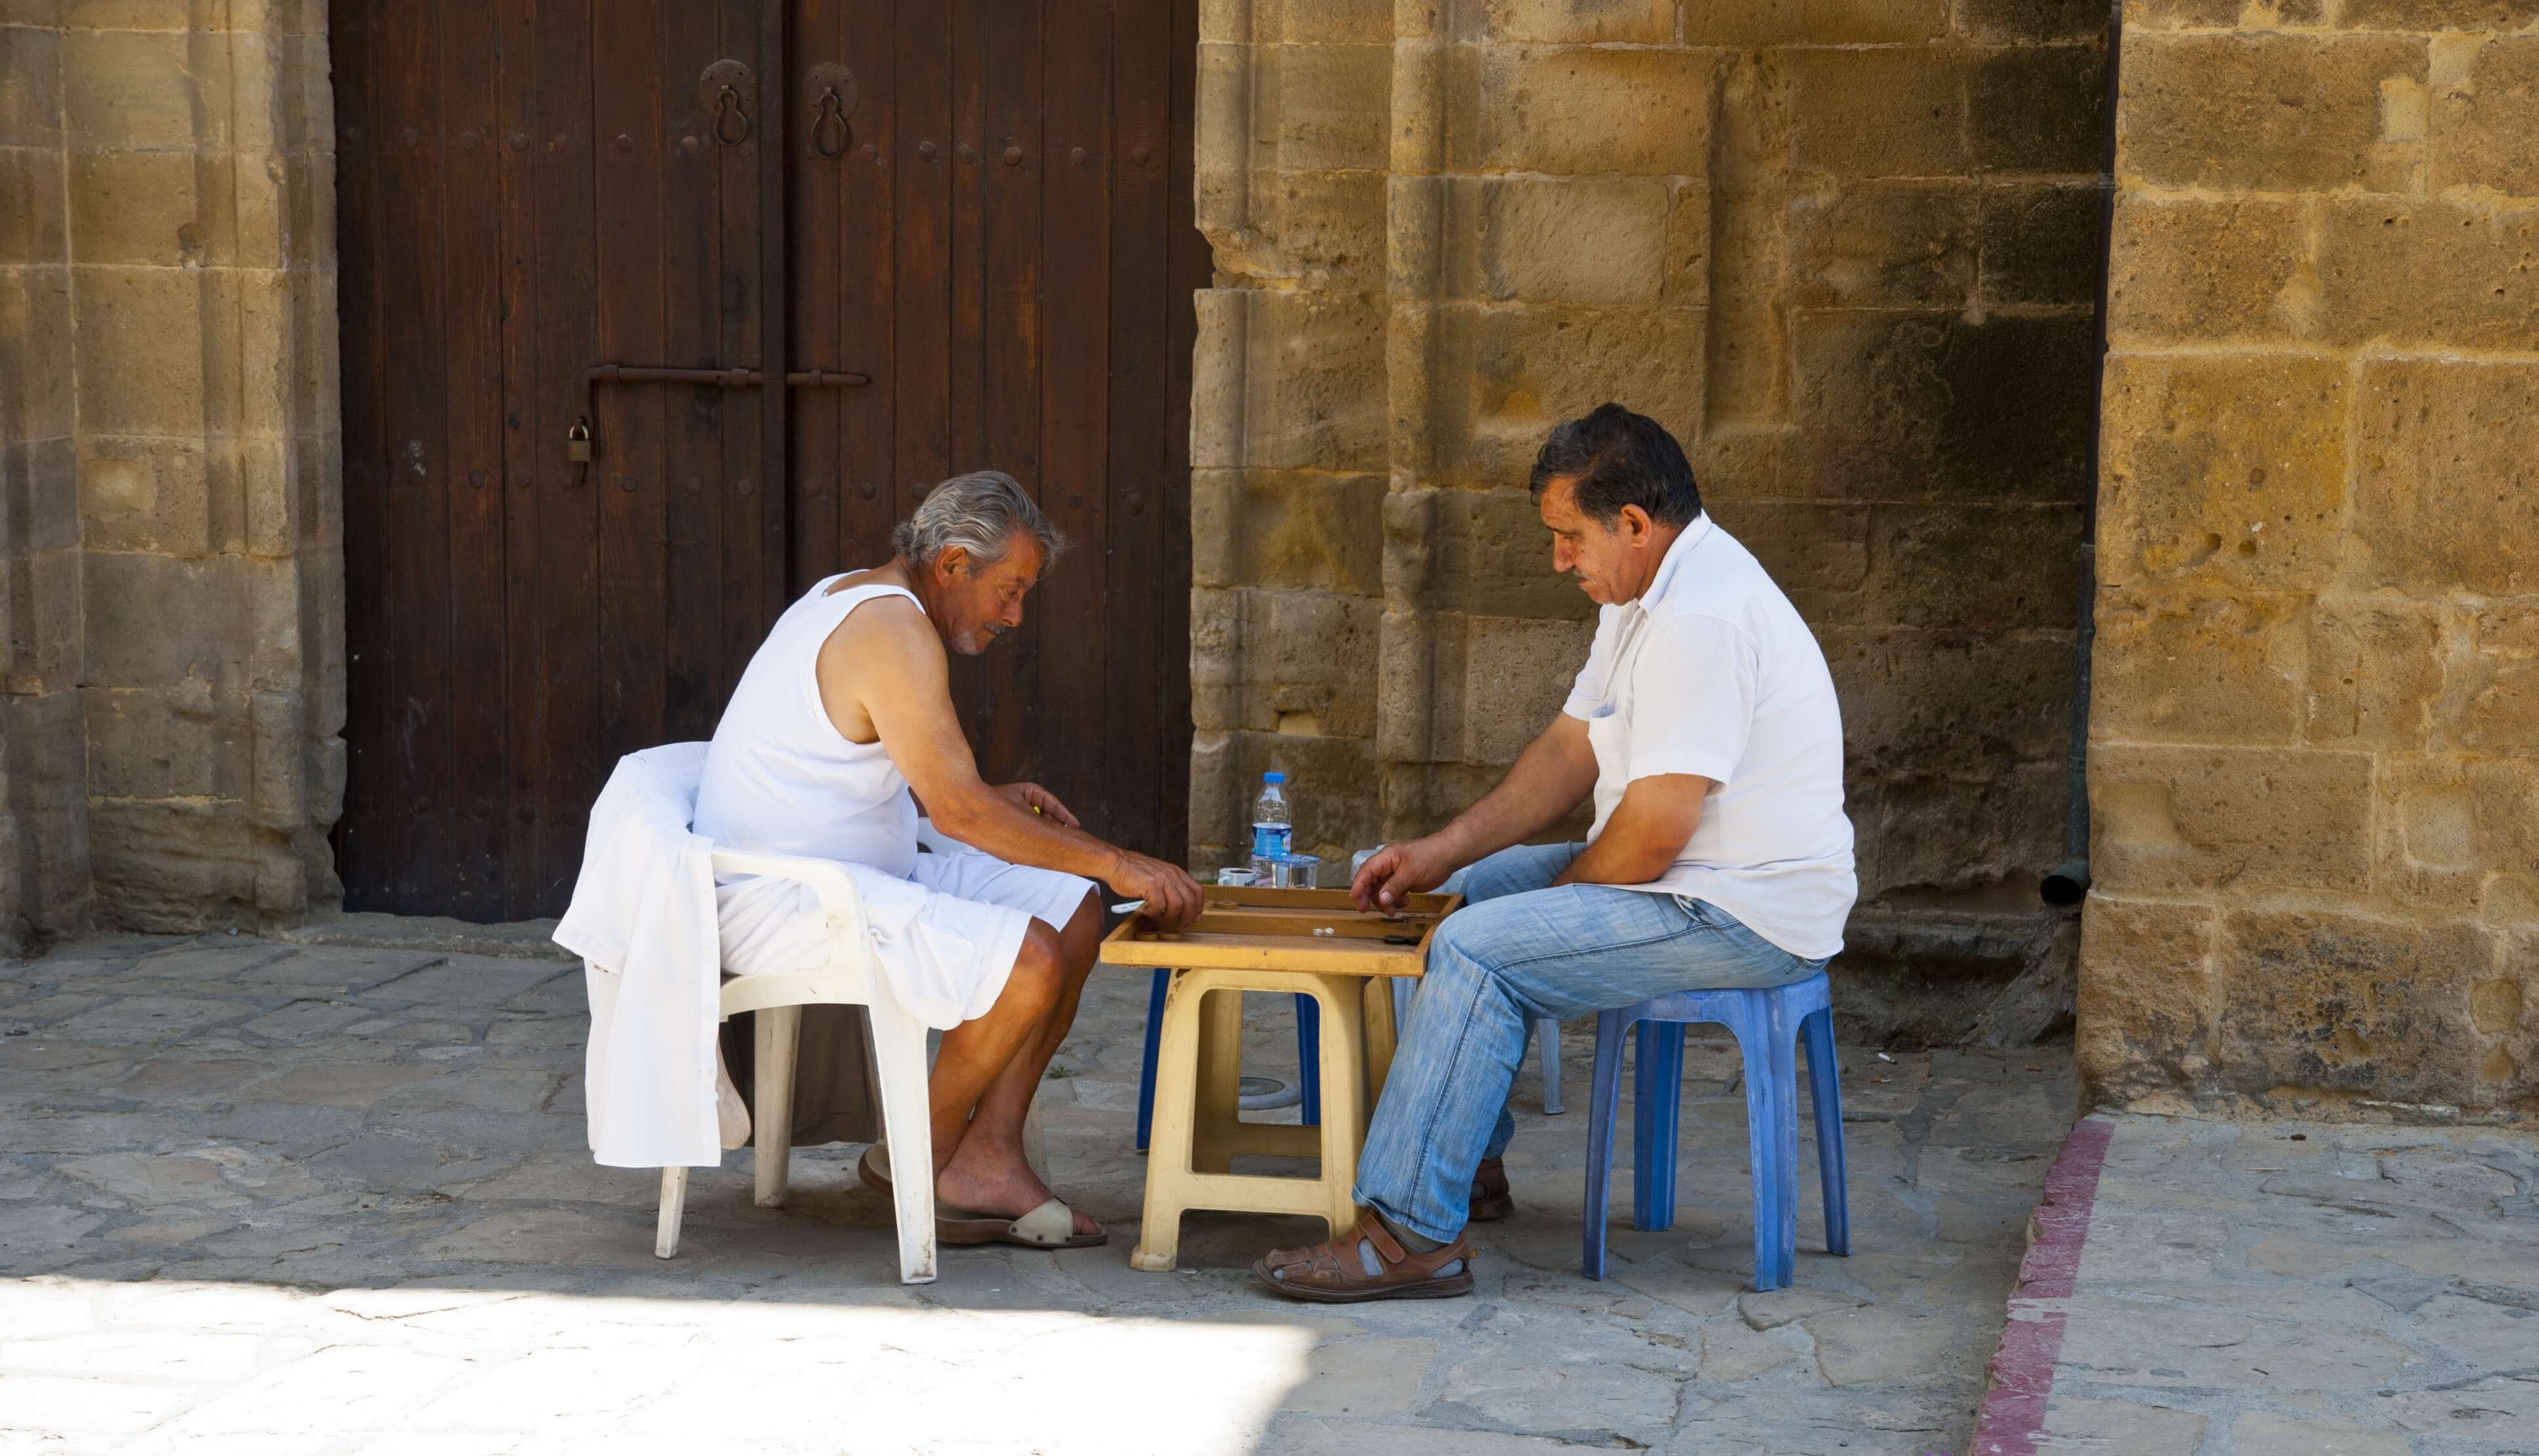 Locals in Northern Cyprus meet for a game of backgammon.